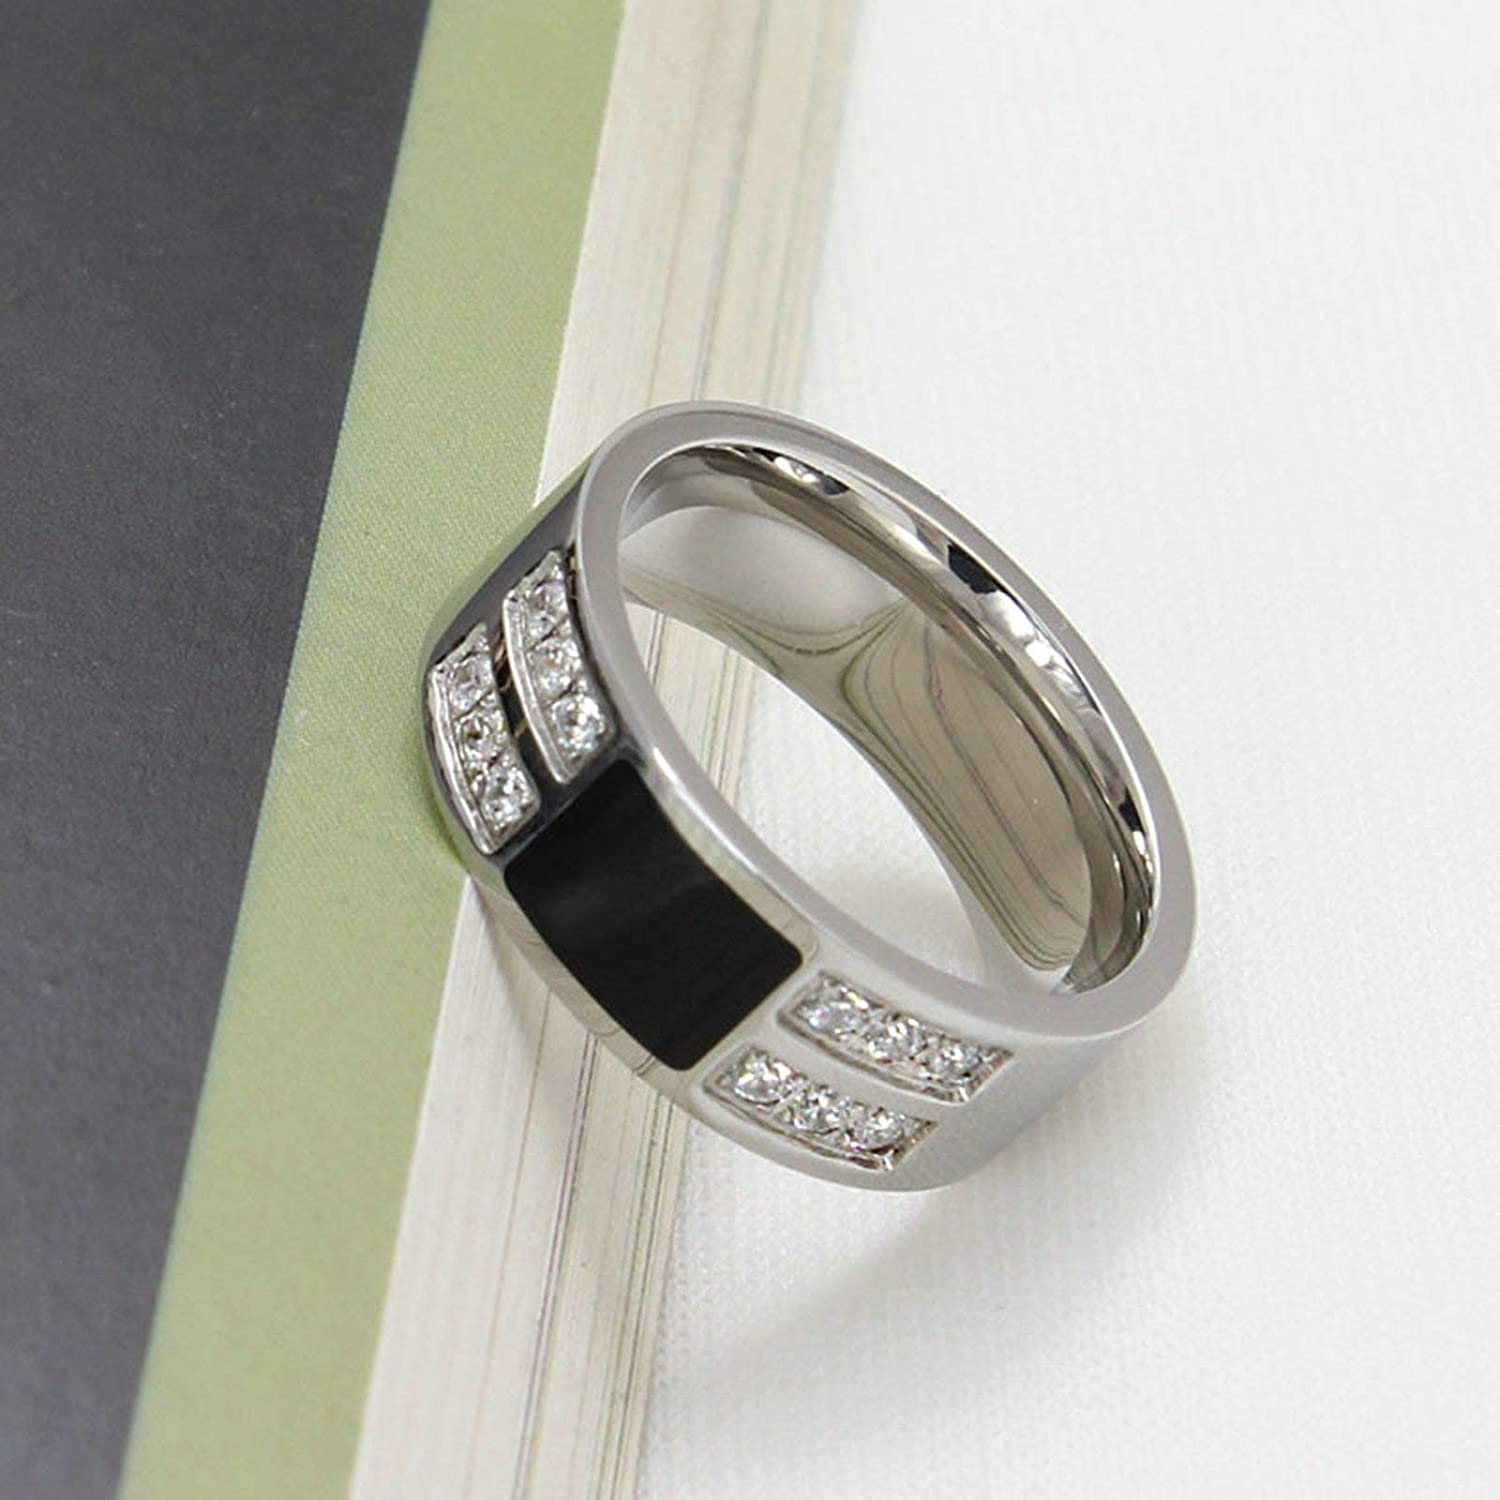 Aooaz Stainless Steel Ring Wedding Silver Cubic Zirconia Ring Stackable Ring Sets Men and Women